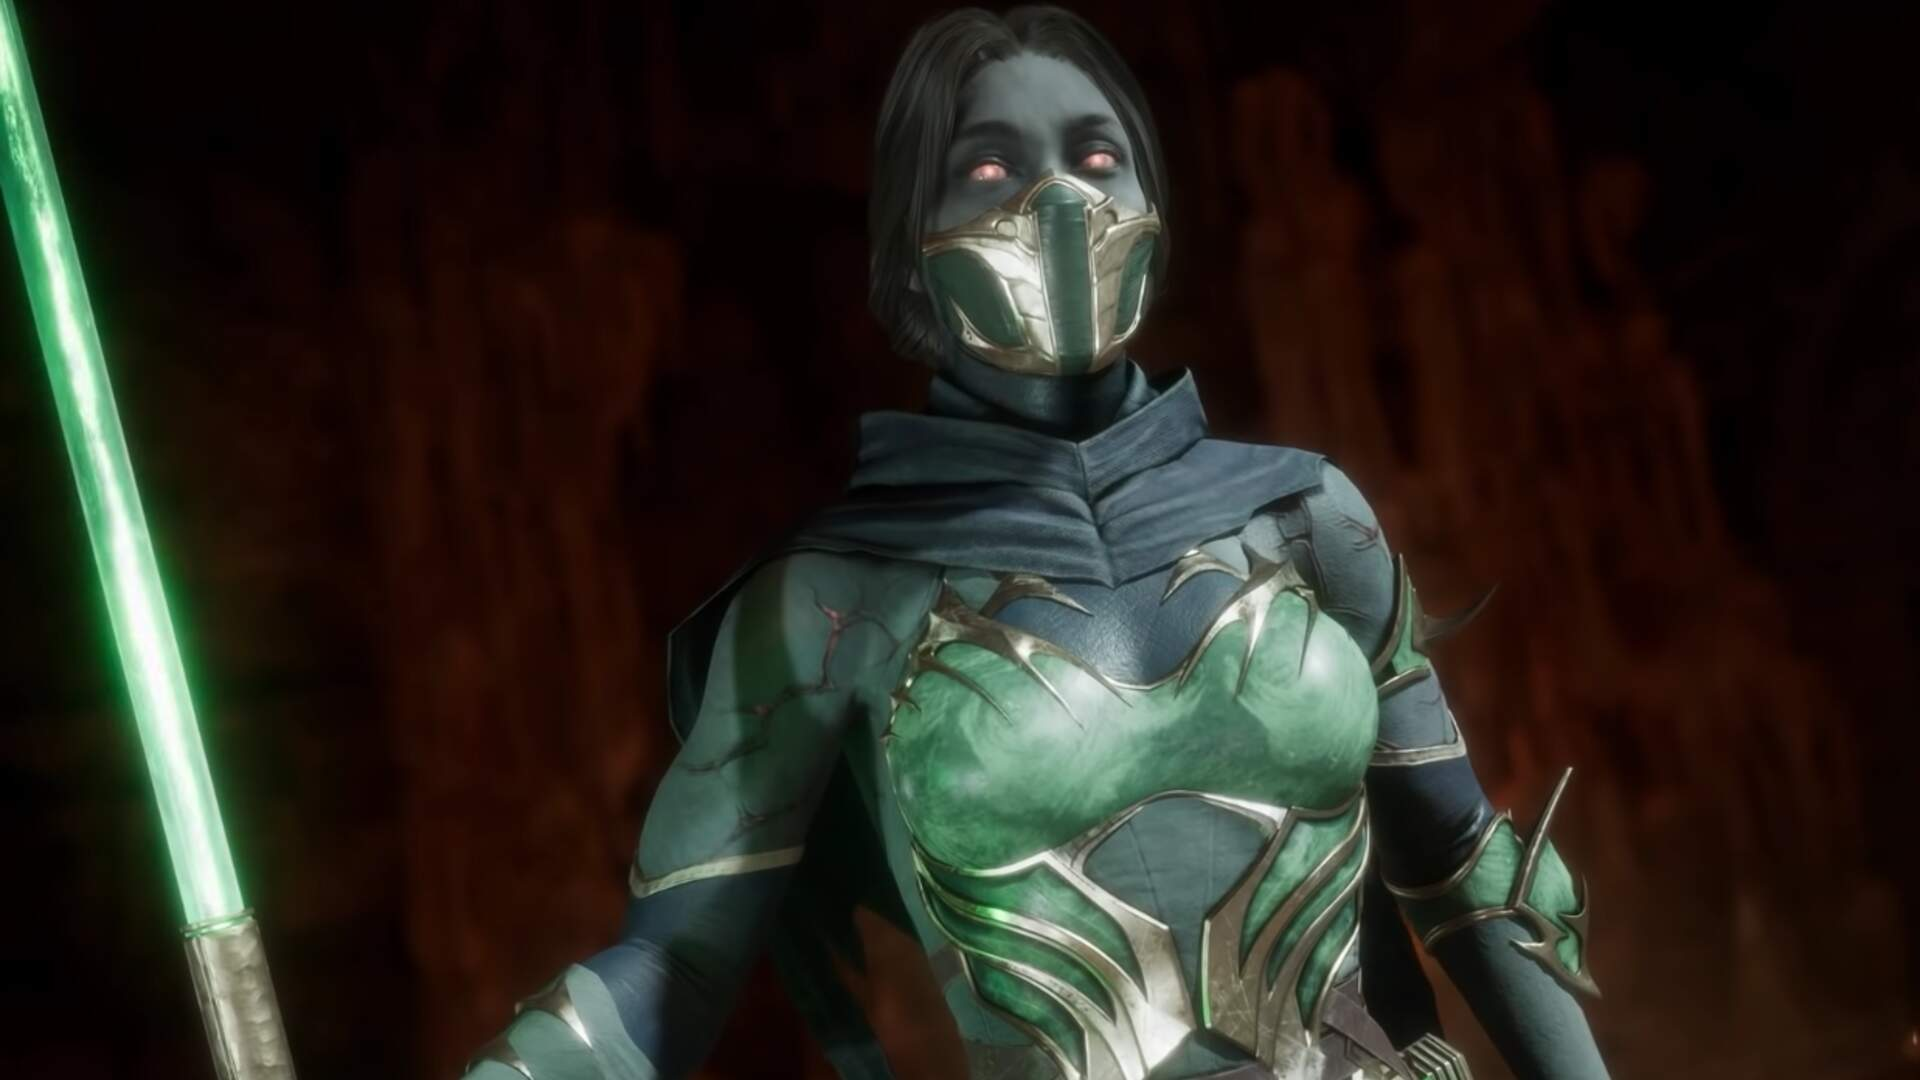 Jade is Back in Mortal Kombat 11 With a Surprising New Look